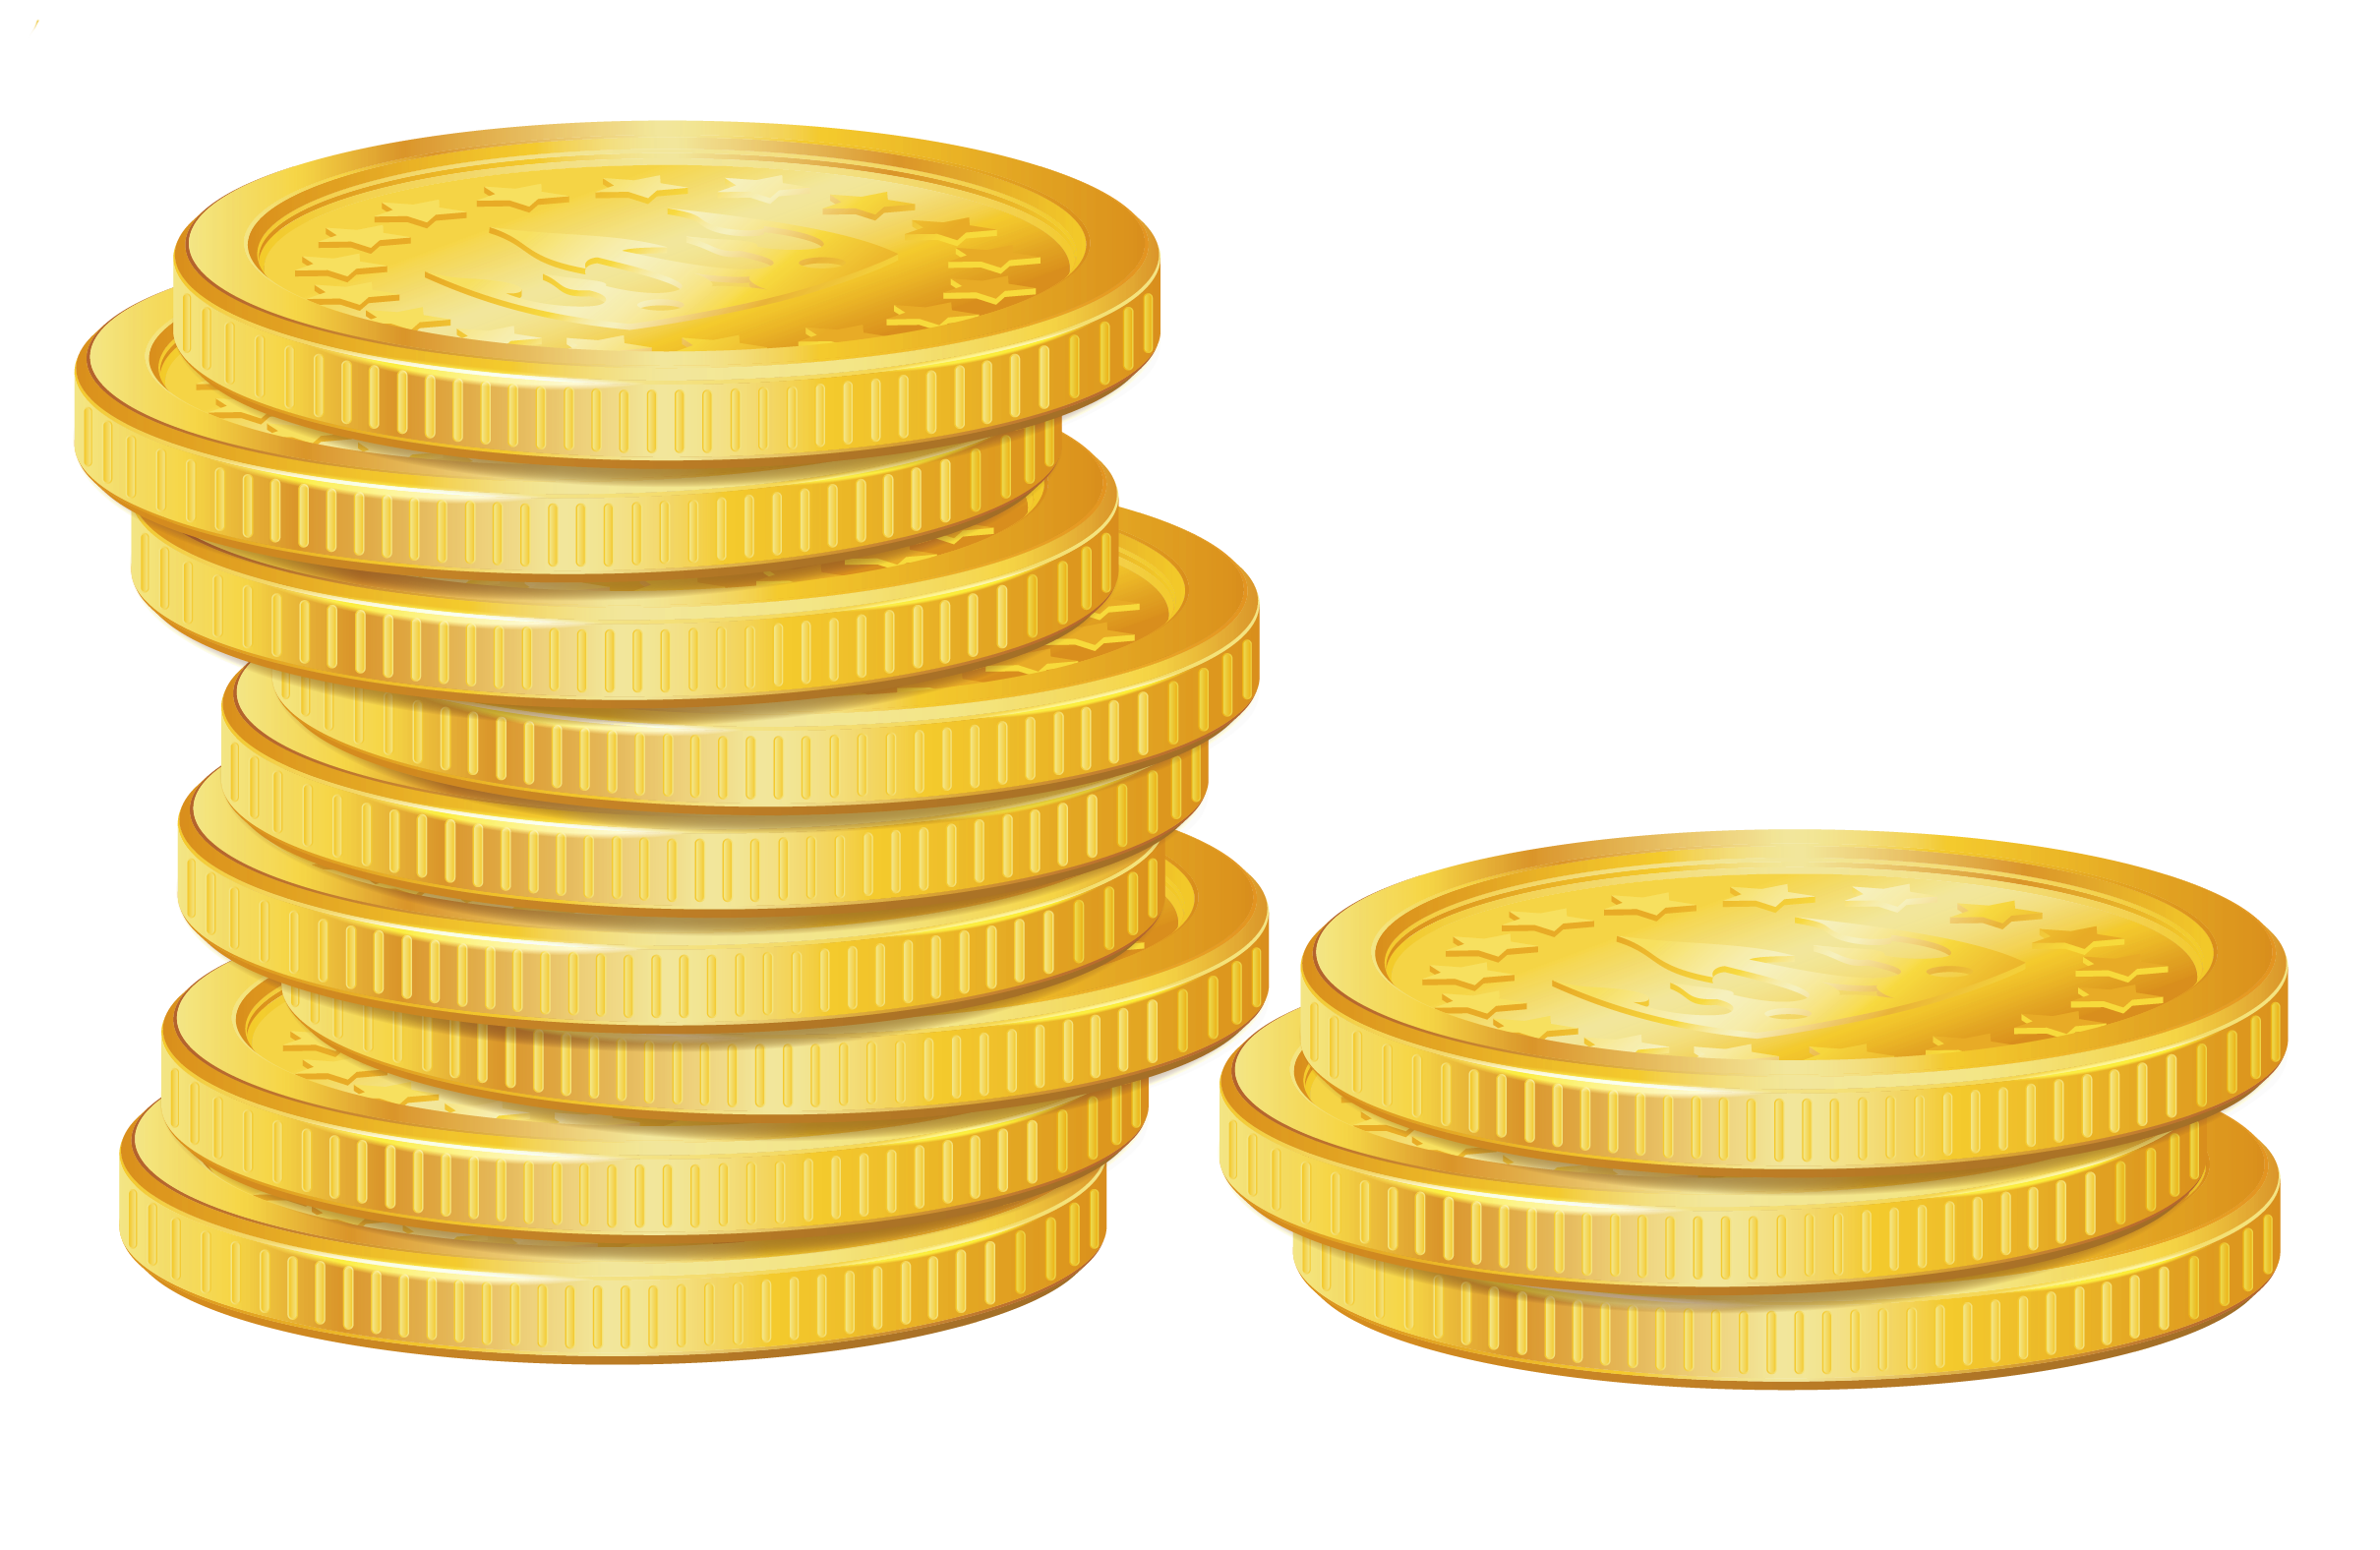 Coins money clipart clipart library library Pile of Coins PNG Picture | Gallery Yopriceville - High-Quality ... clipart library library